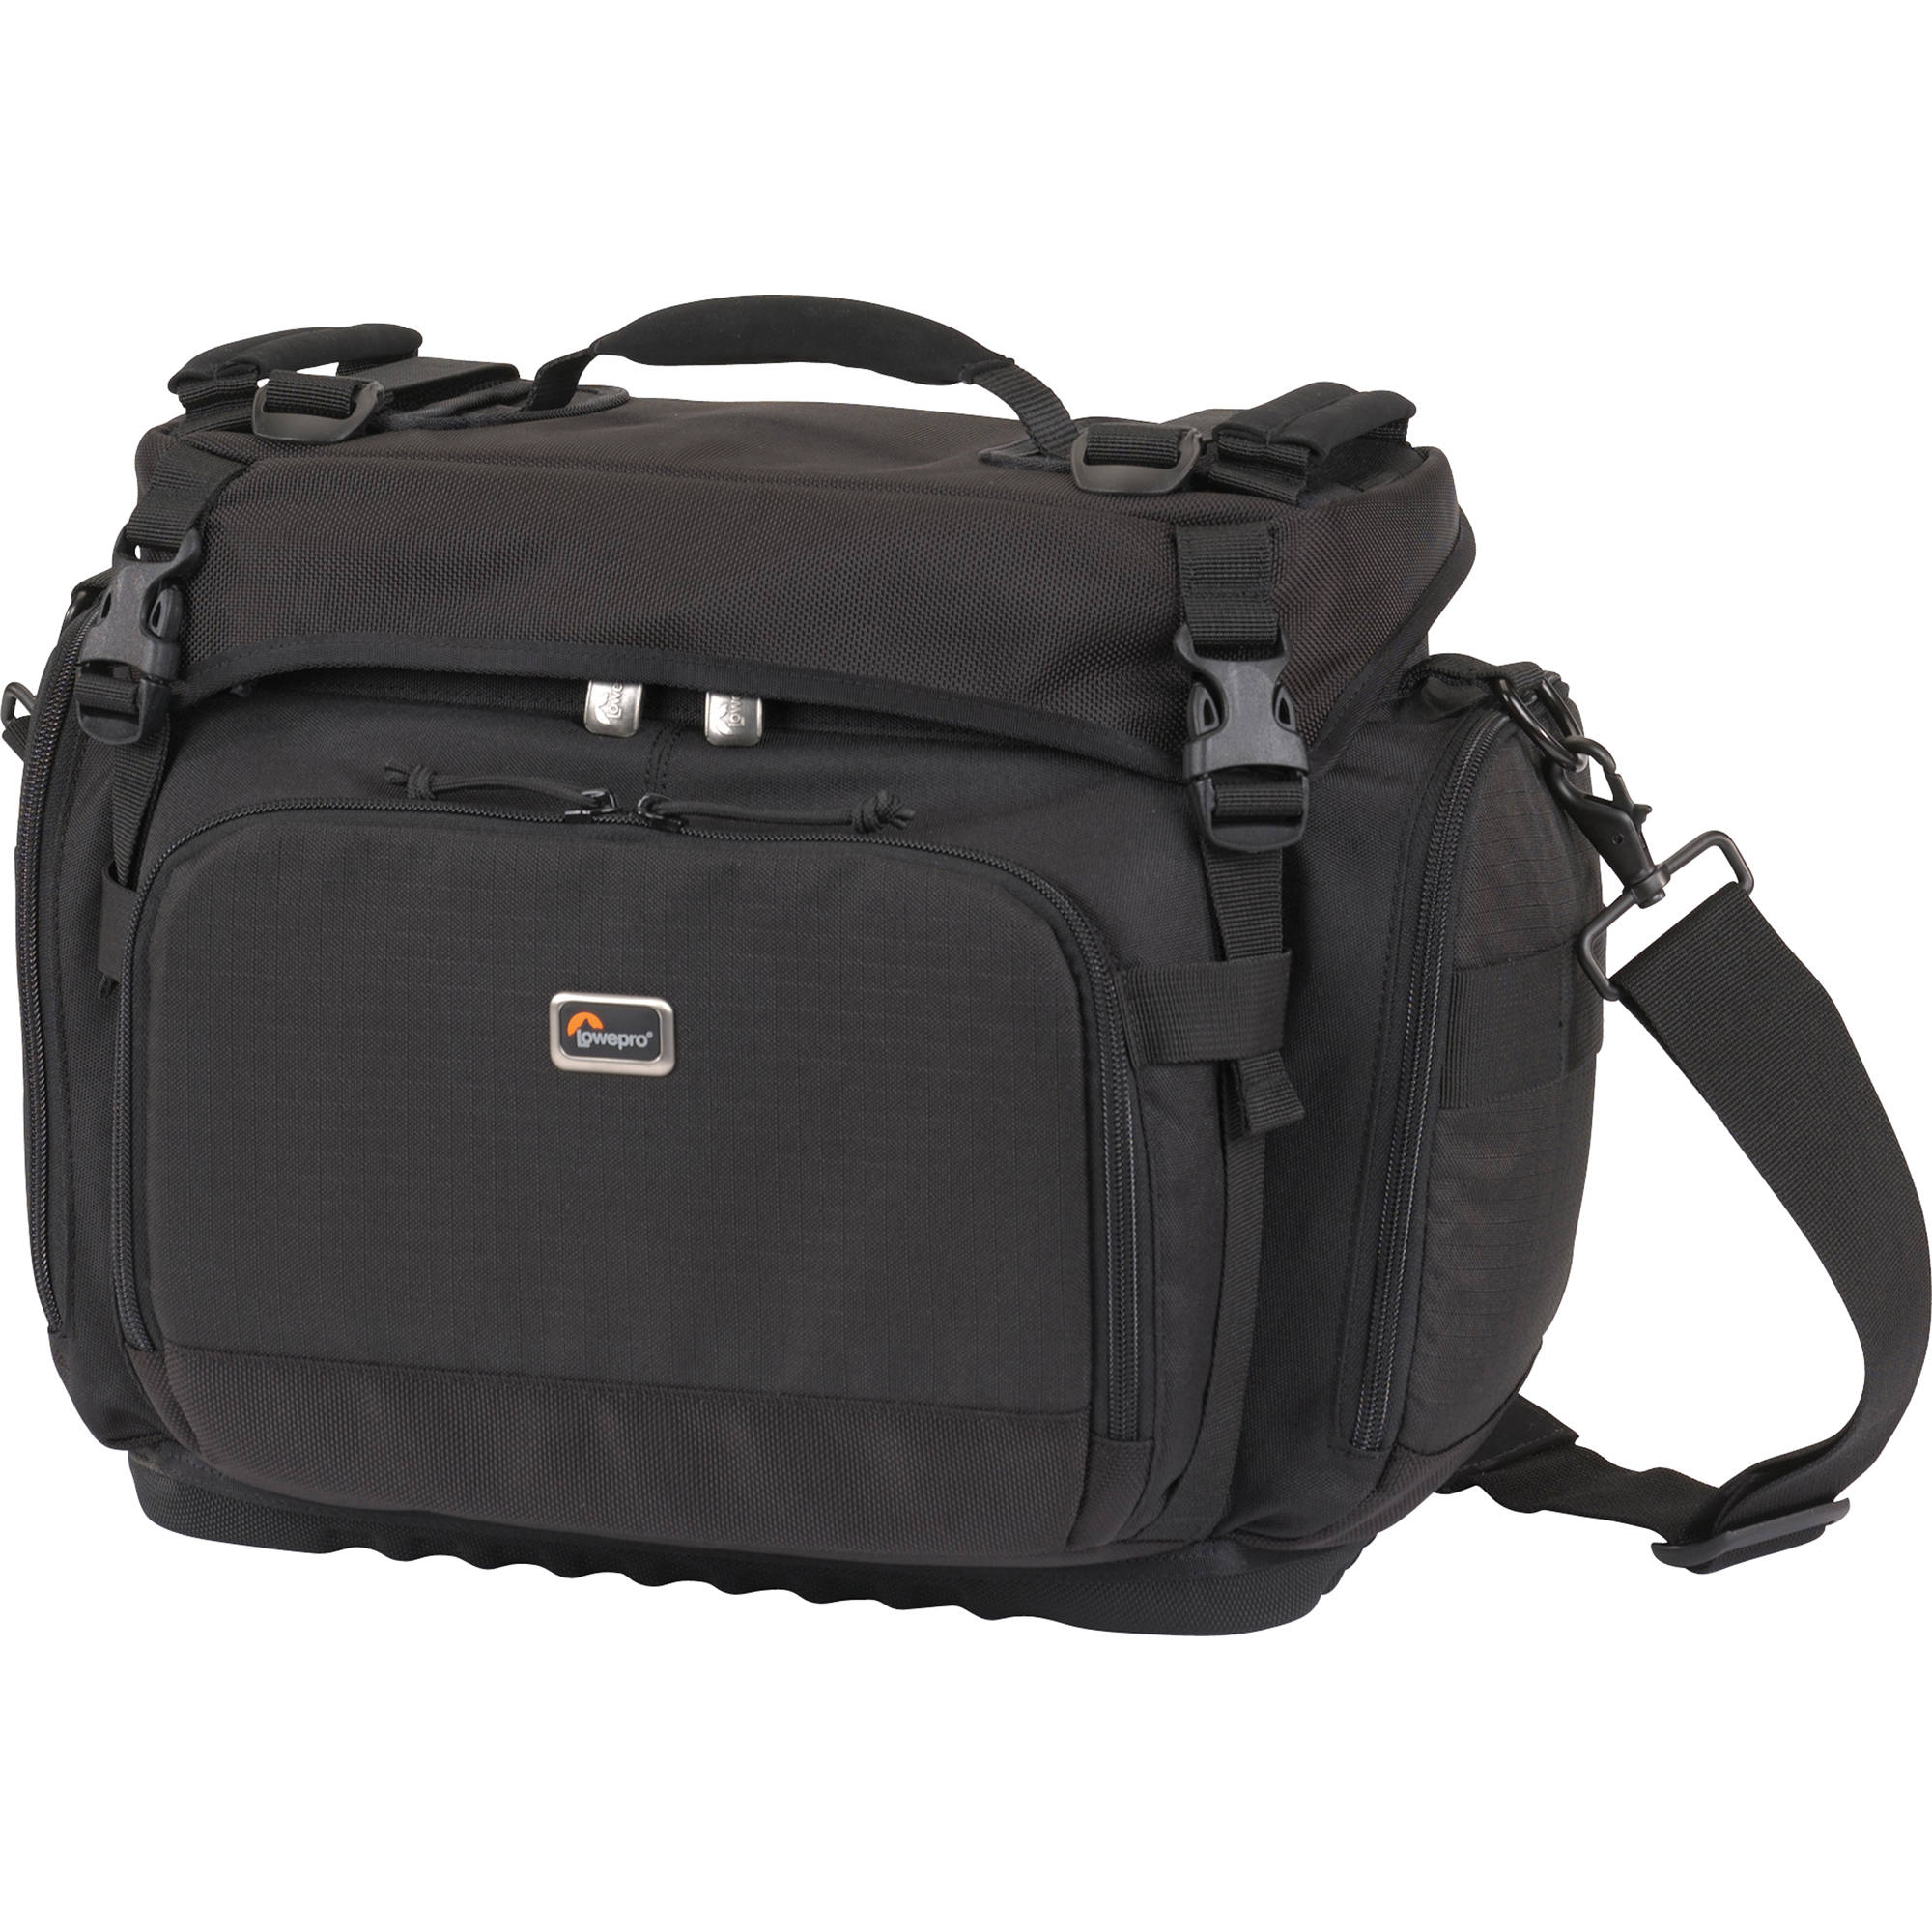 Lowepro Over The Shoulder Camera Bag Tapestry Shoulder Bag